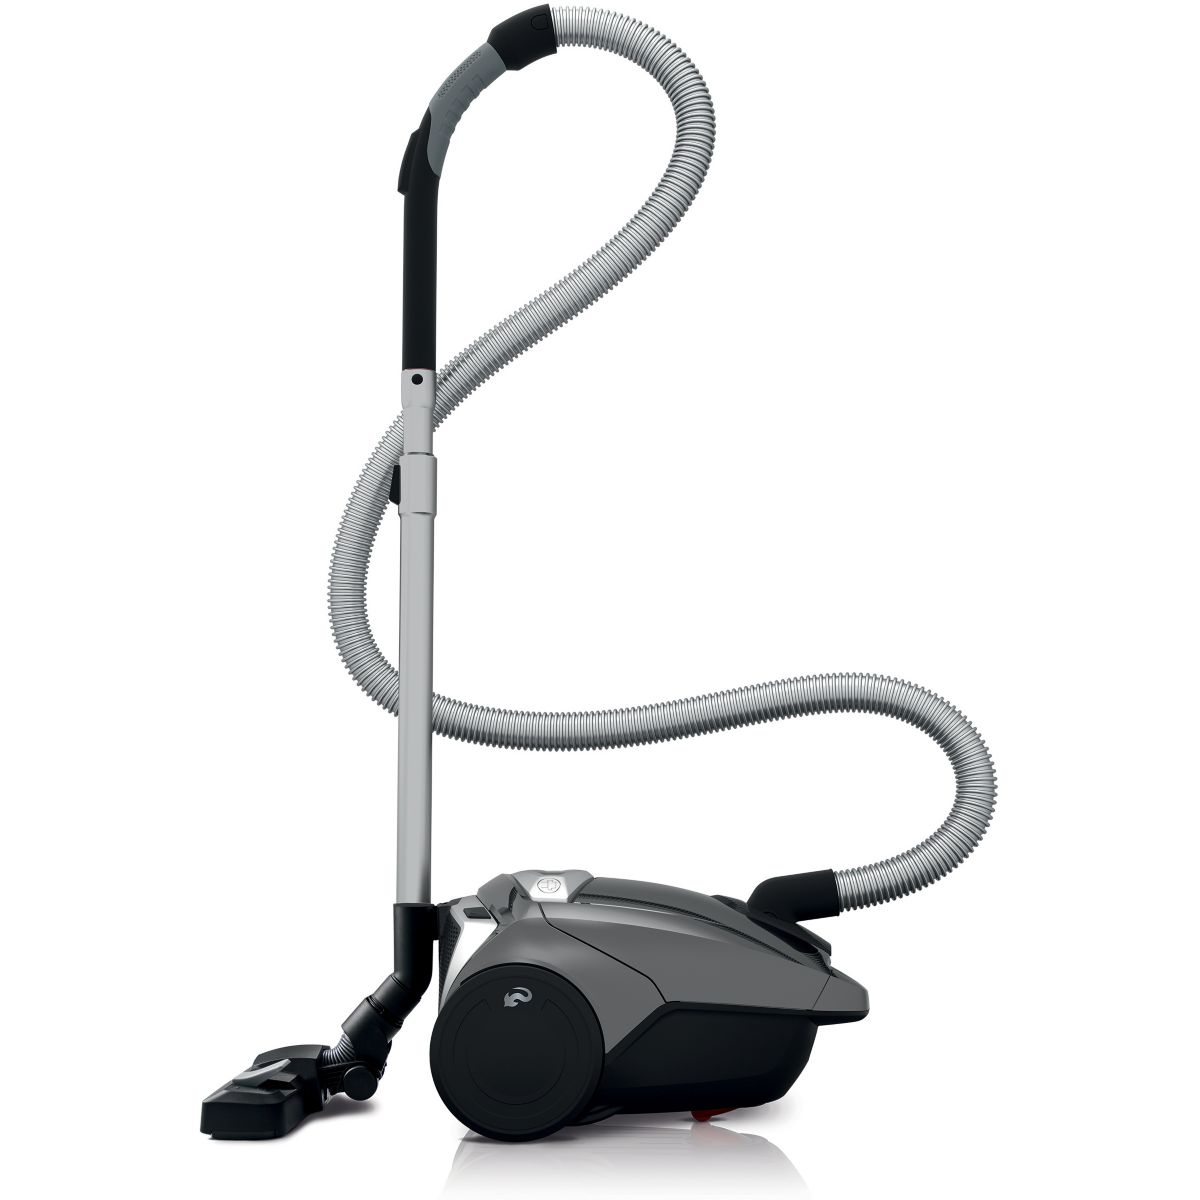 Aspirateur avec sac DIRT DEVIL DD7276-3 REBEL 76 PET (photo)